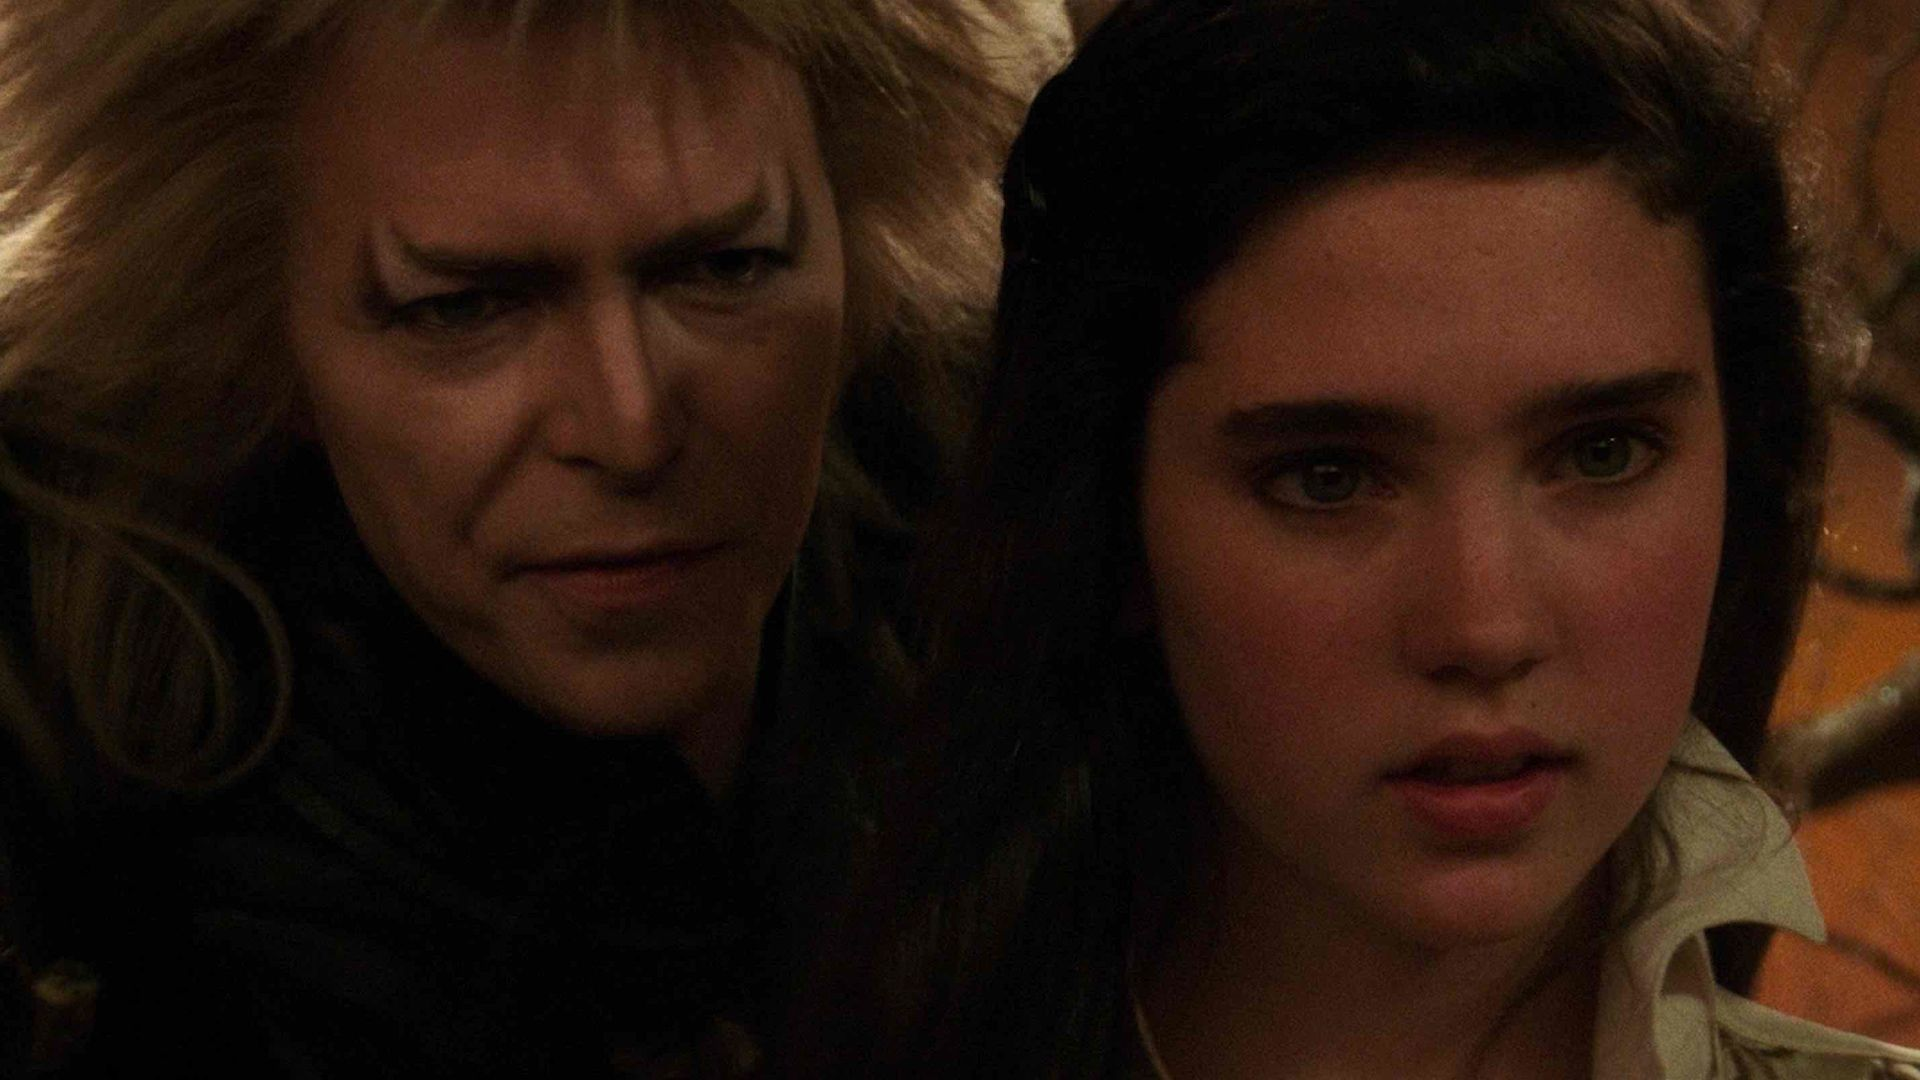 'Labyrinth' back in theaters: 5 mind-blowing facts about Jim Henson's cult classic